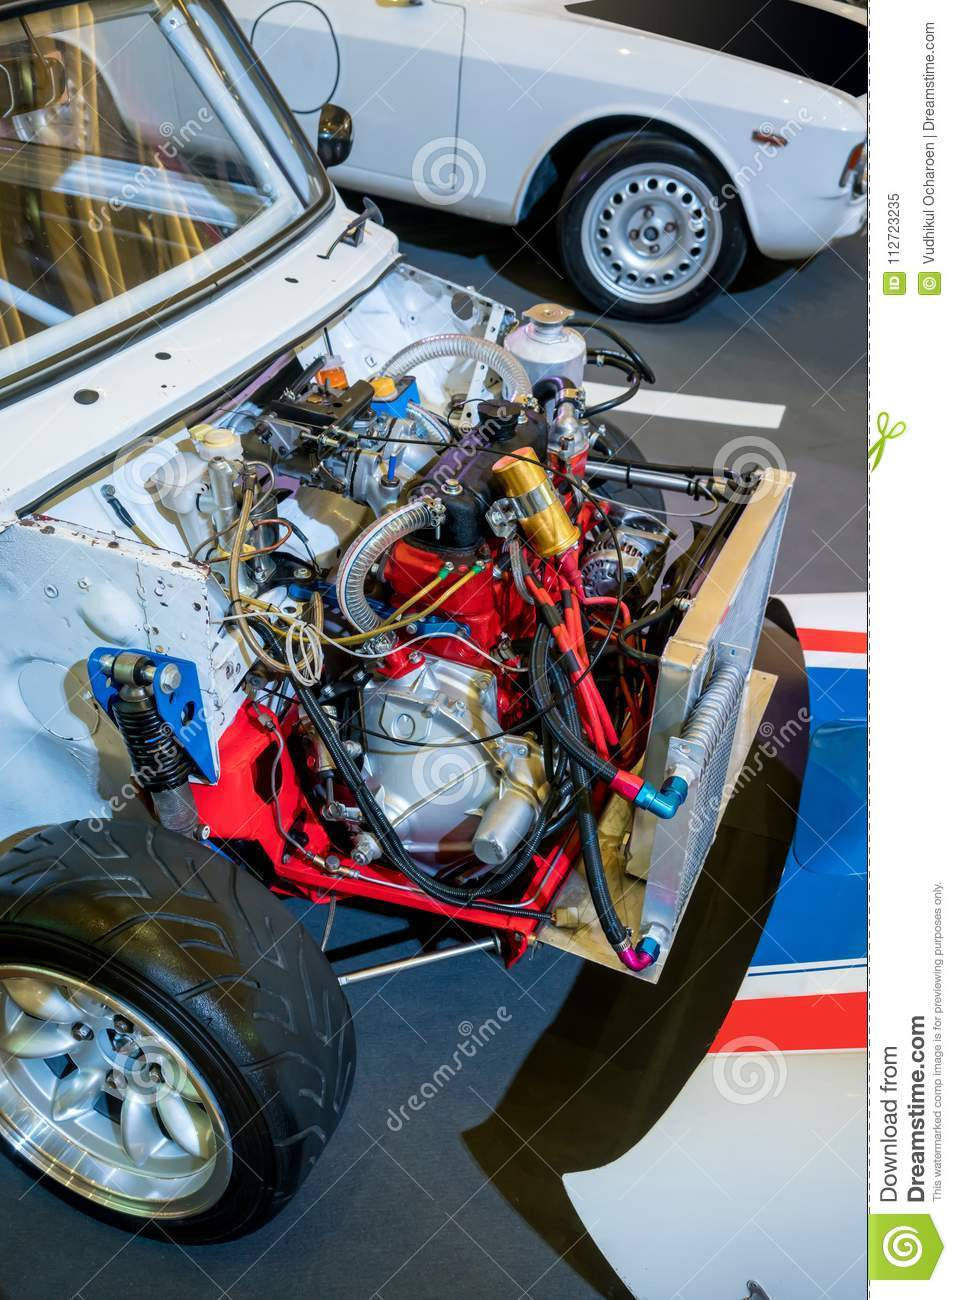 Used car engine for display in exhibition